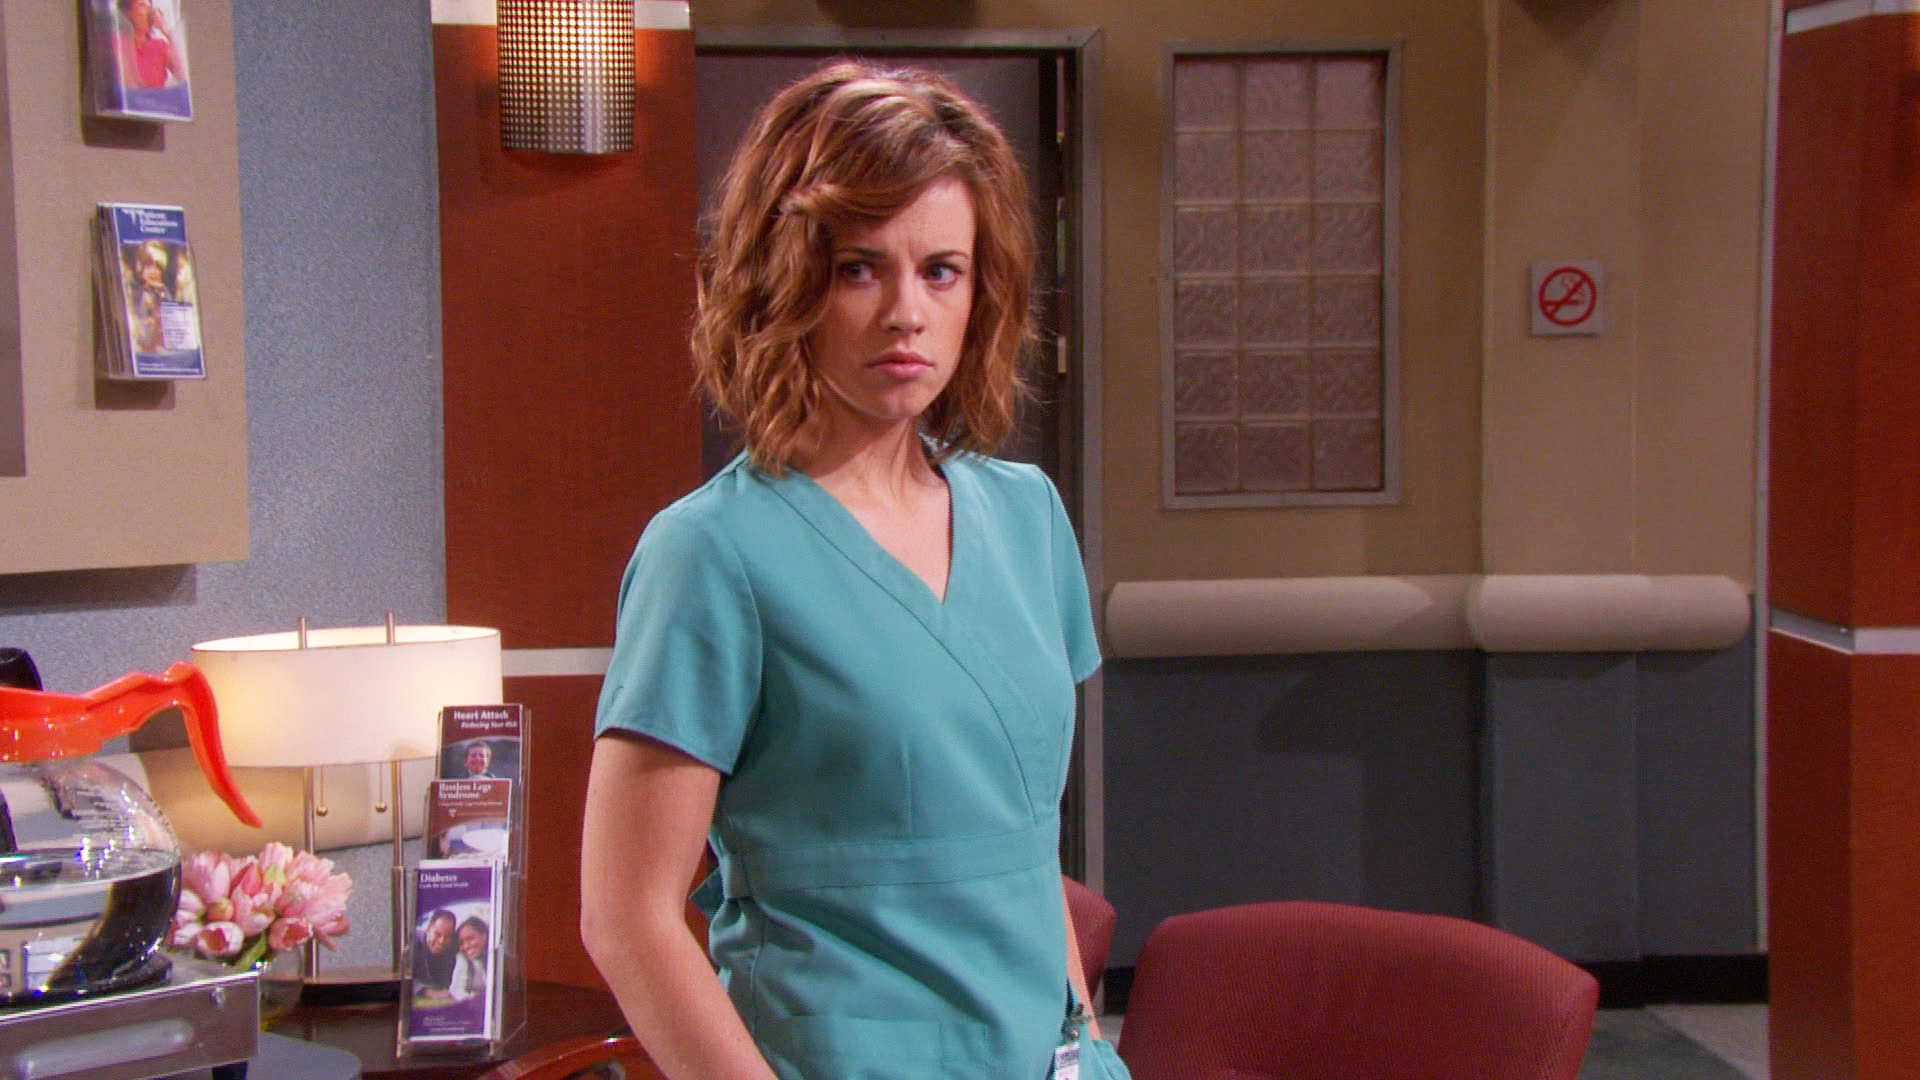 Melanie on days of our lives melanie and daniel days of our lives for Where the rooms are a collection of our lives